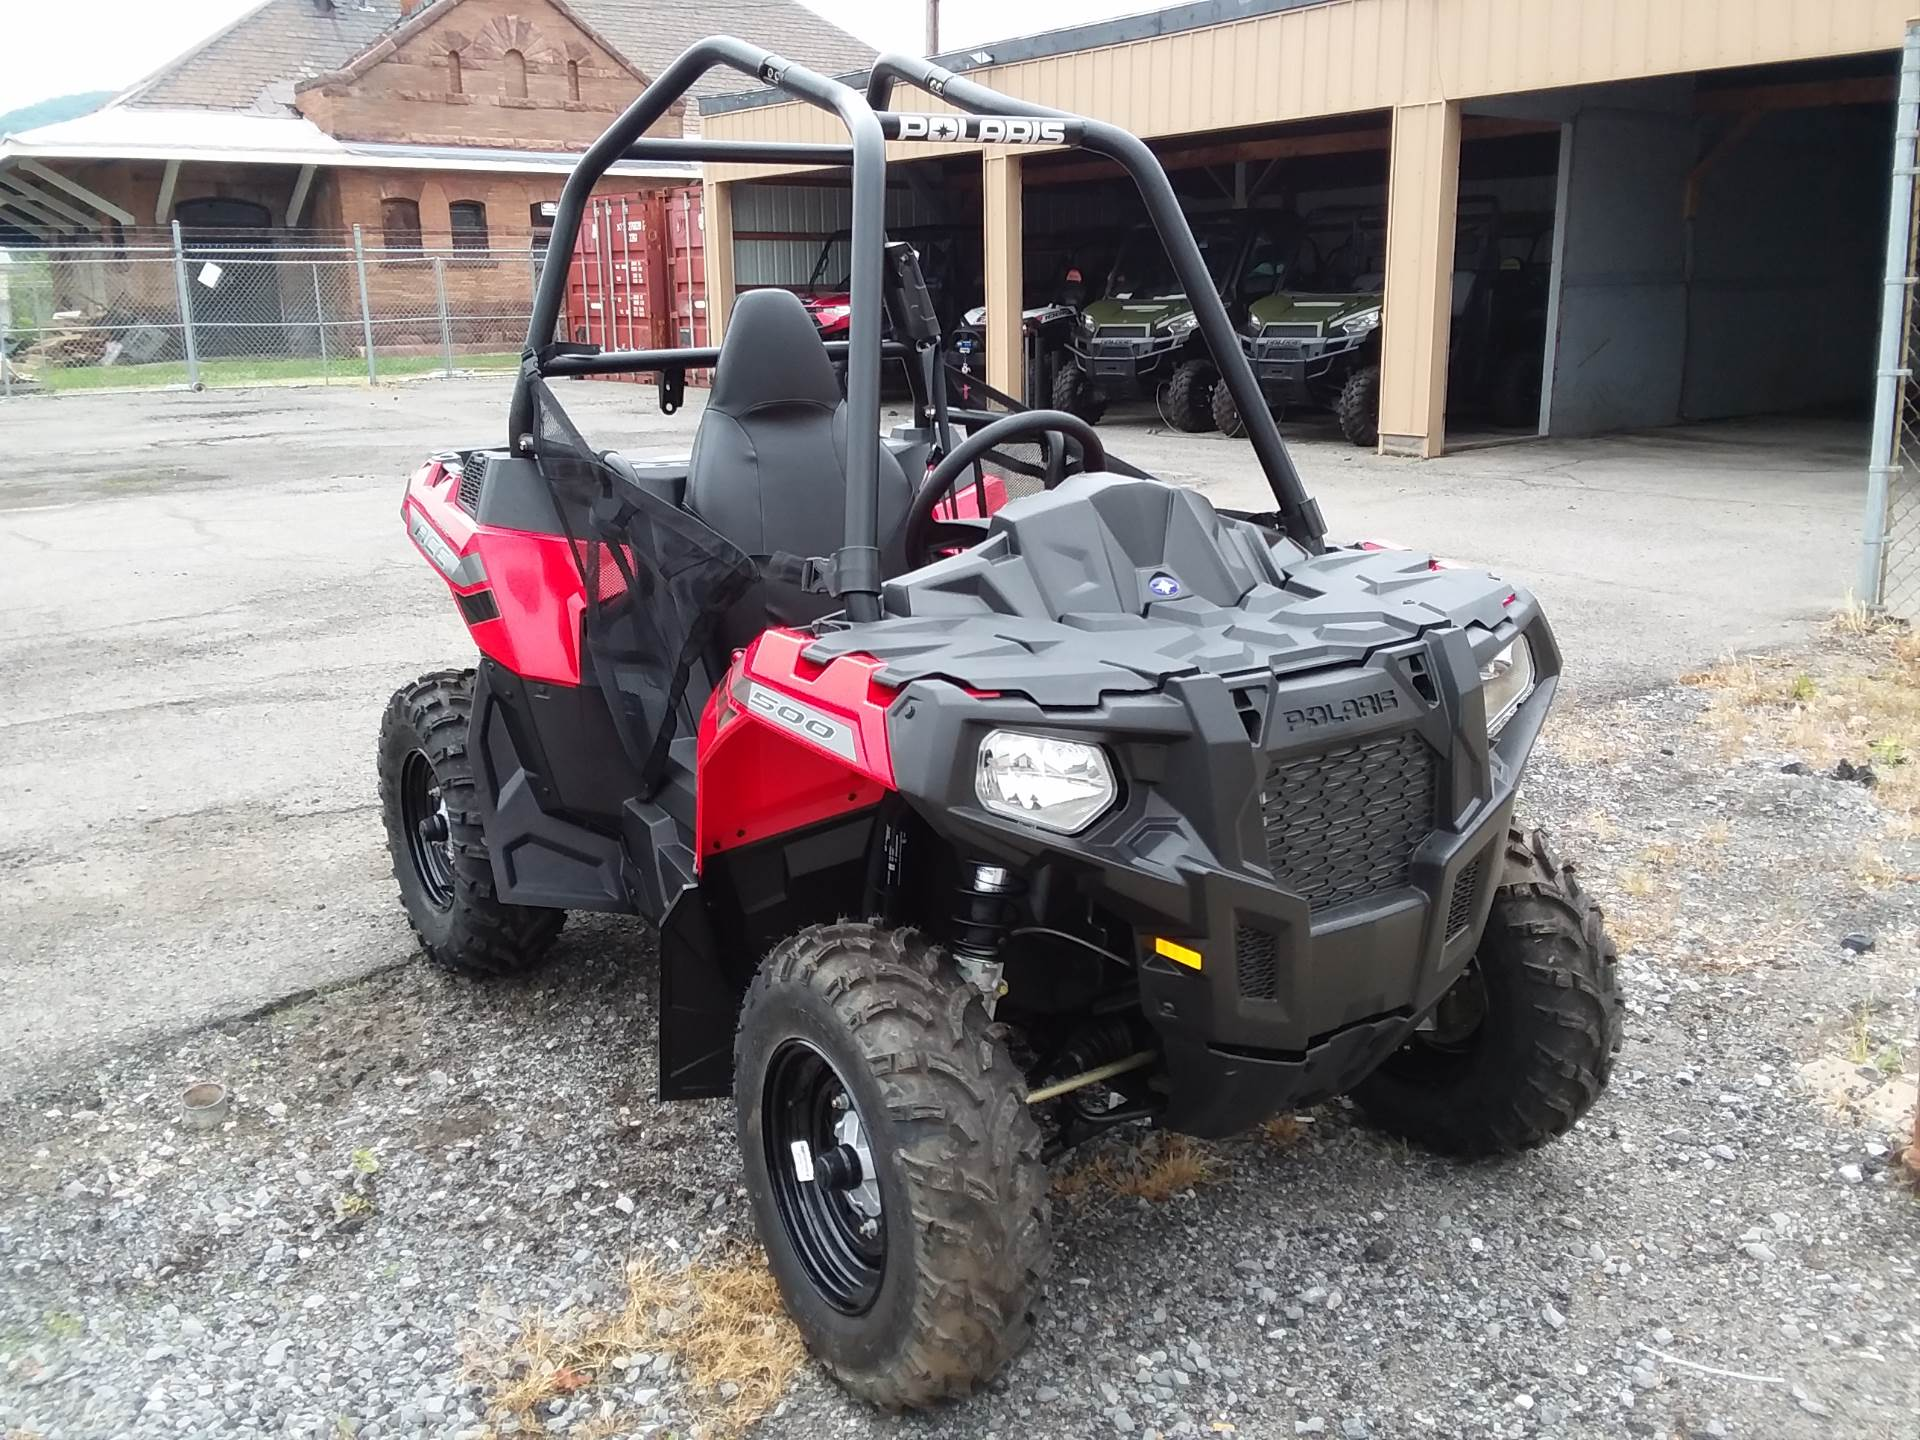 2018 Polaris Ace 500 in Coraopolis, Pennsylvania